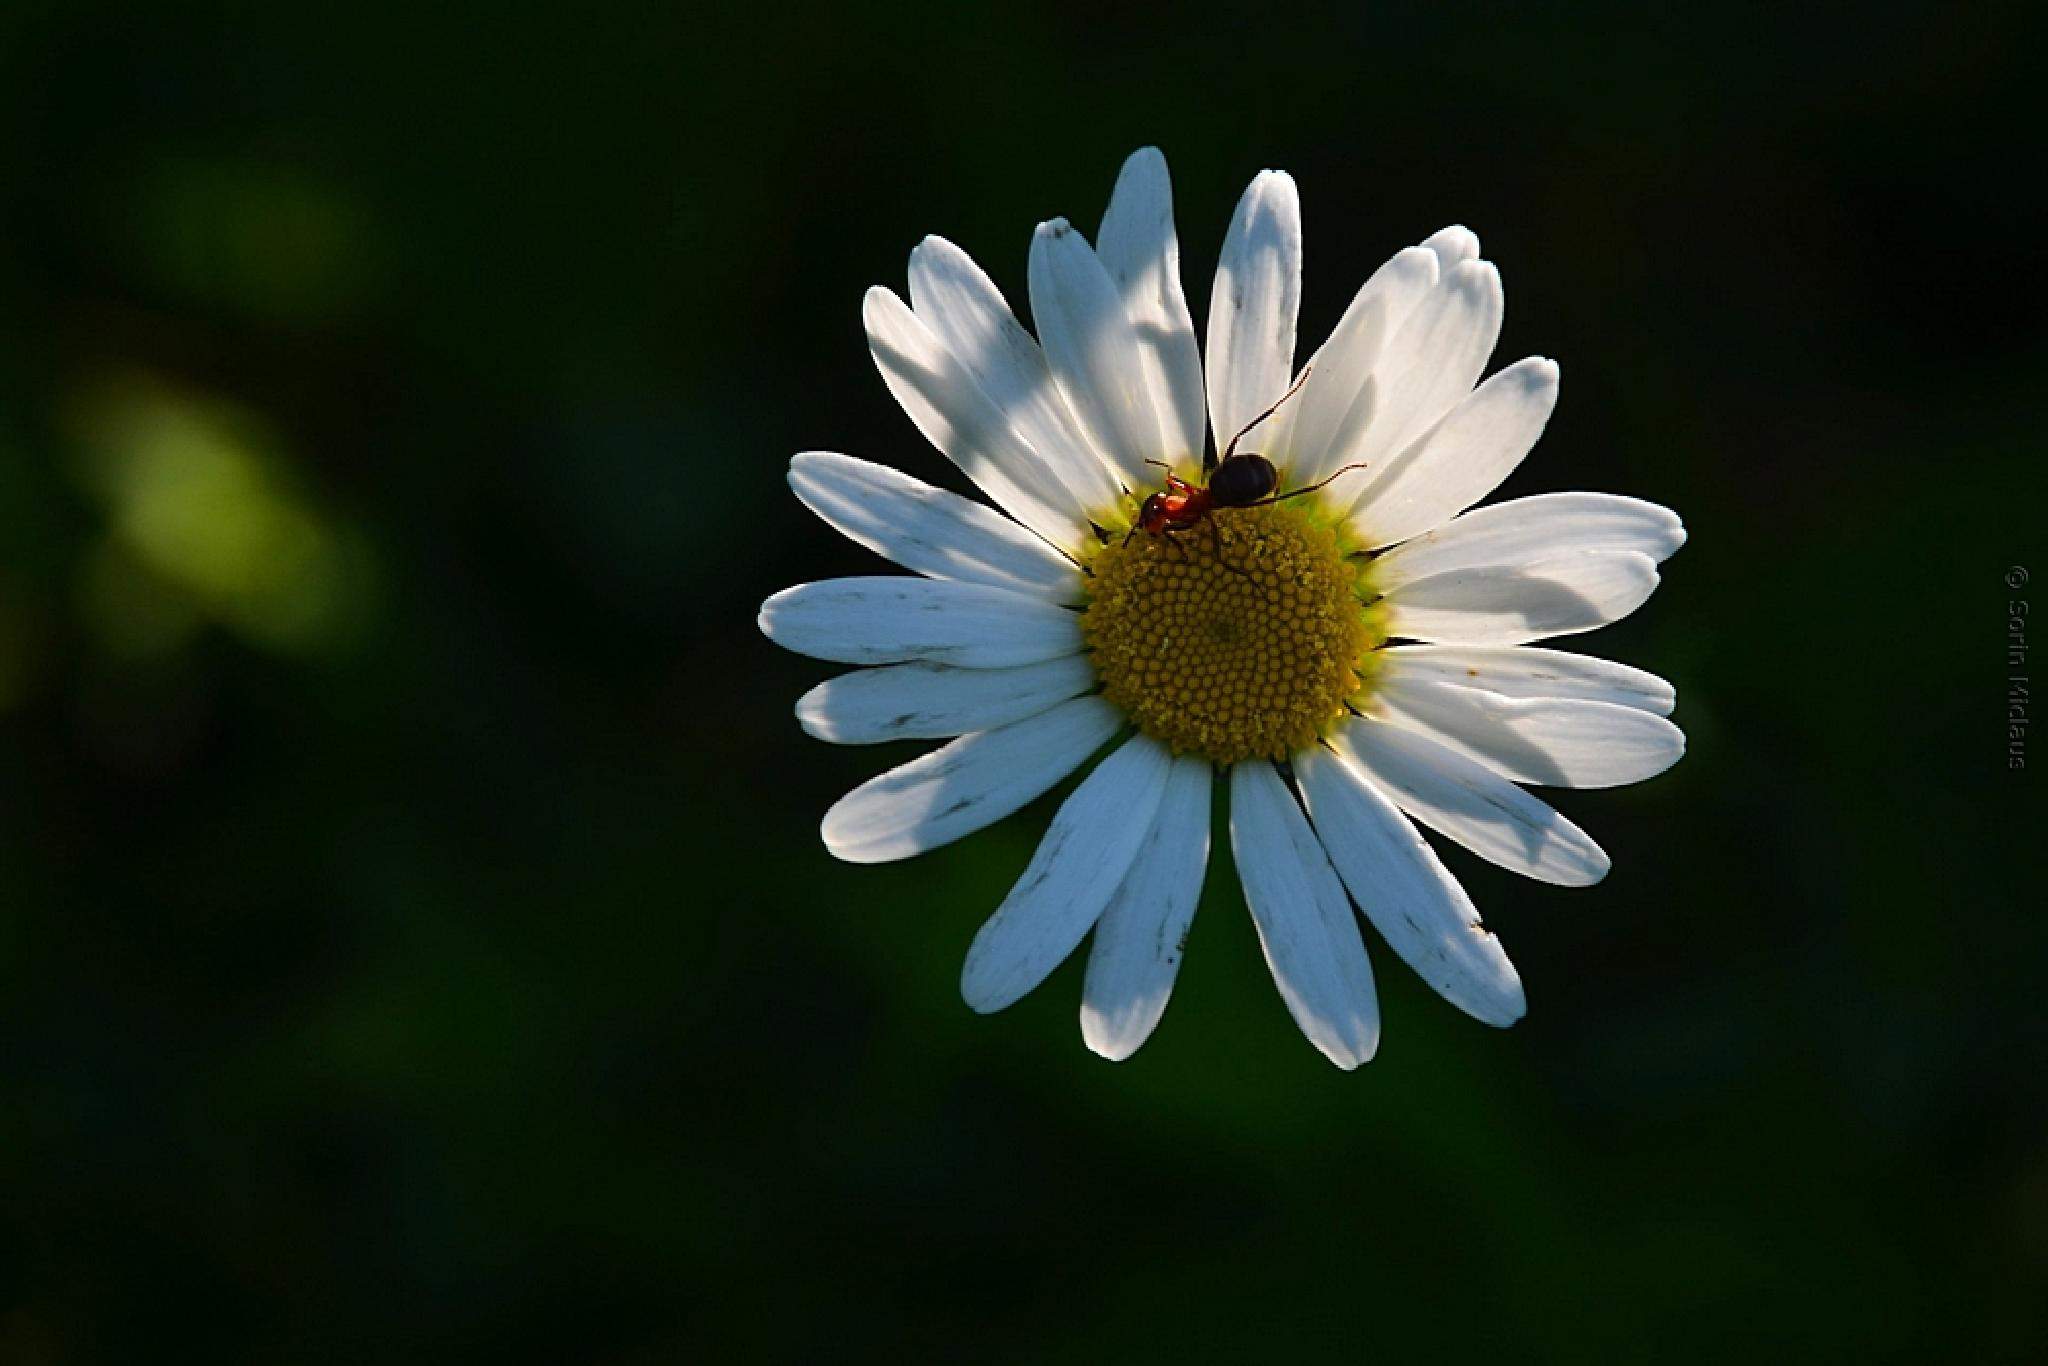 Common Daisy by smiclaus